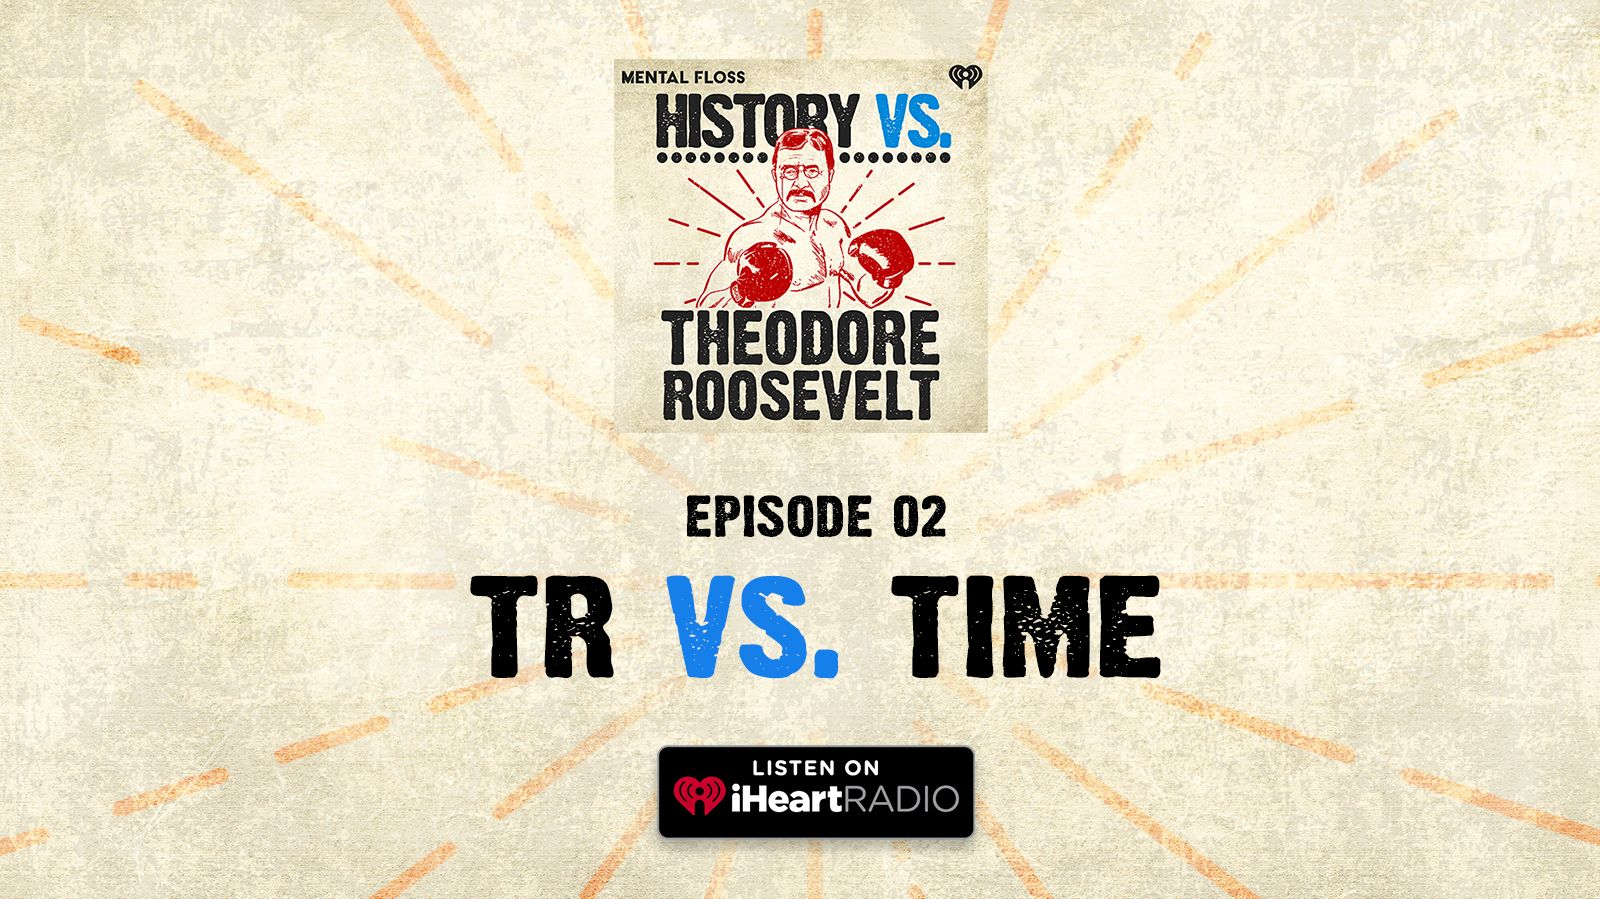 History Vs. Podcast Episode 2: Theodore Roosevelt Vs. Time